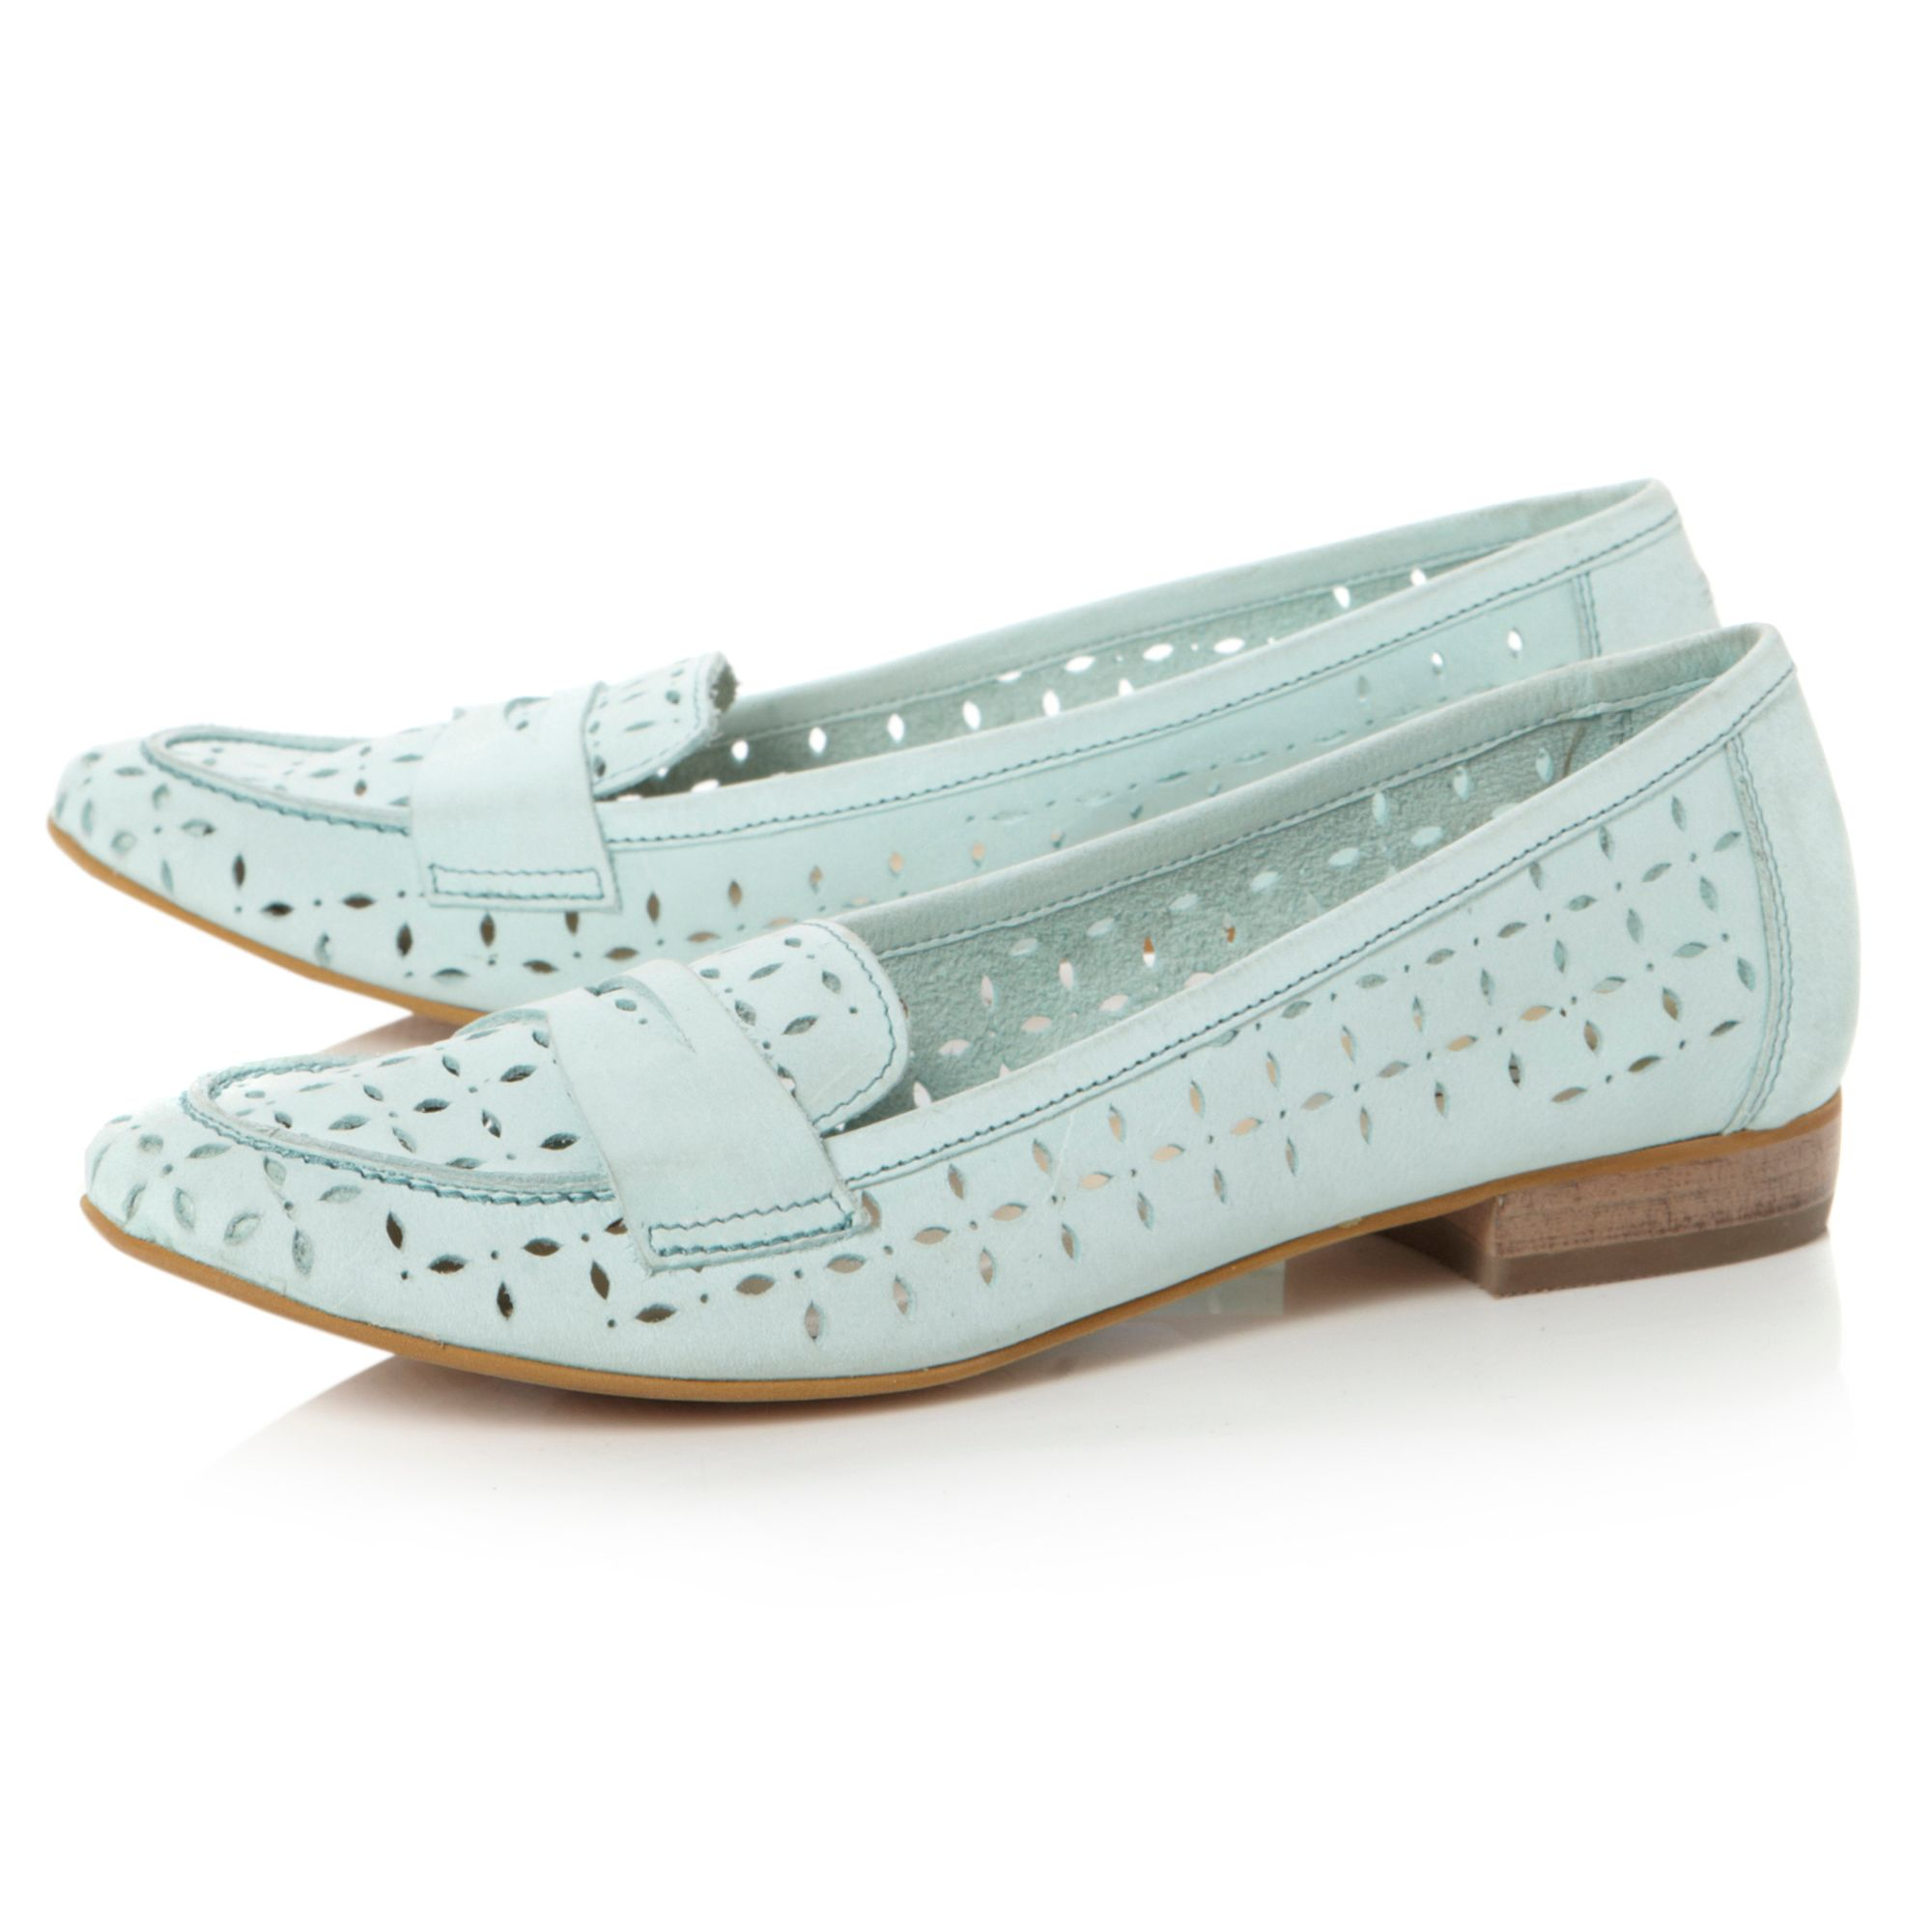 Lollipop laser cut loafer shoes